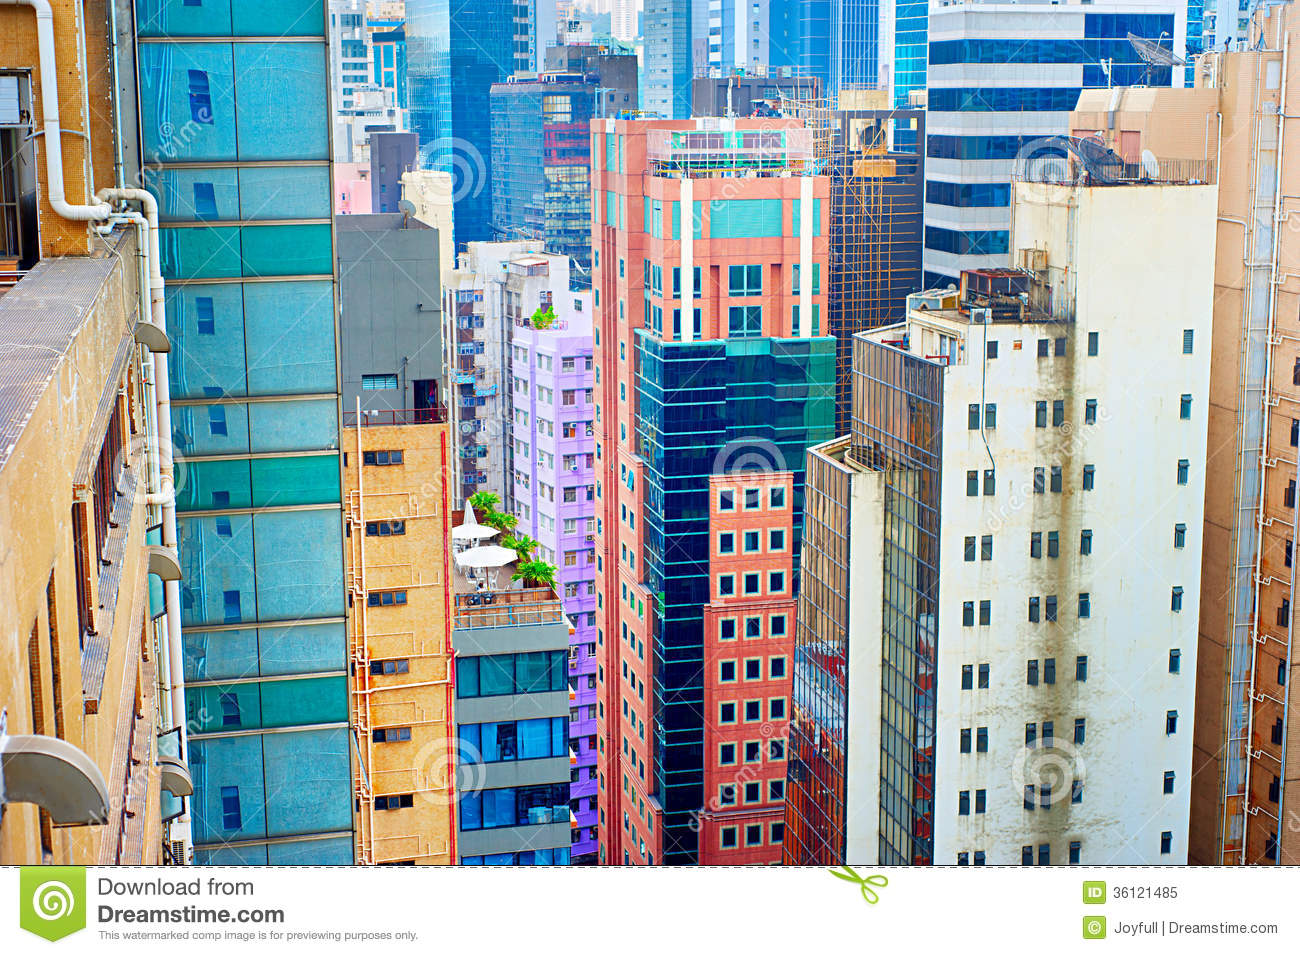 hong kong housing problems Hong kong is a densely populated metropolitan so there are a lot of housing problems especially for the urban poor as the housing problems in hong kong such as the shortage of housing units are getting more acute, it is worth making an in-depth analysis for the sake of gaining a deeper insight.